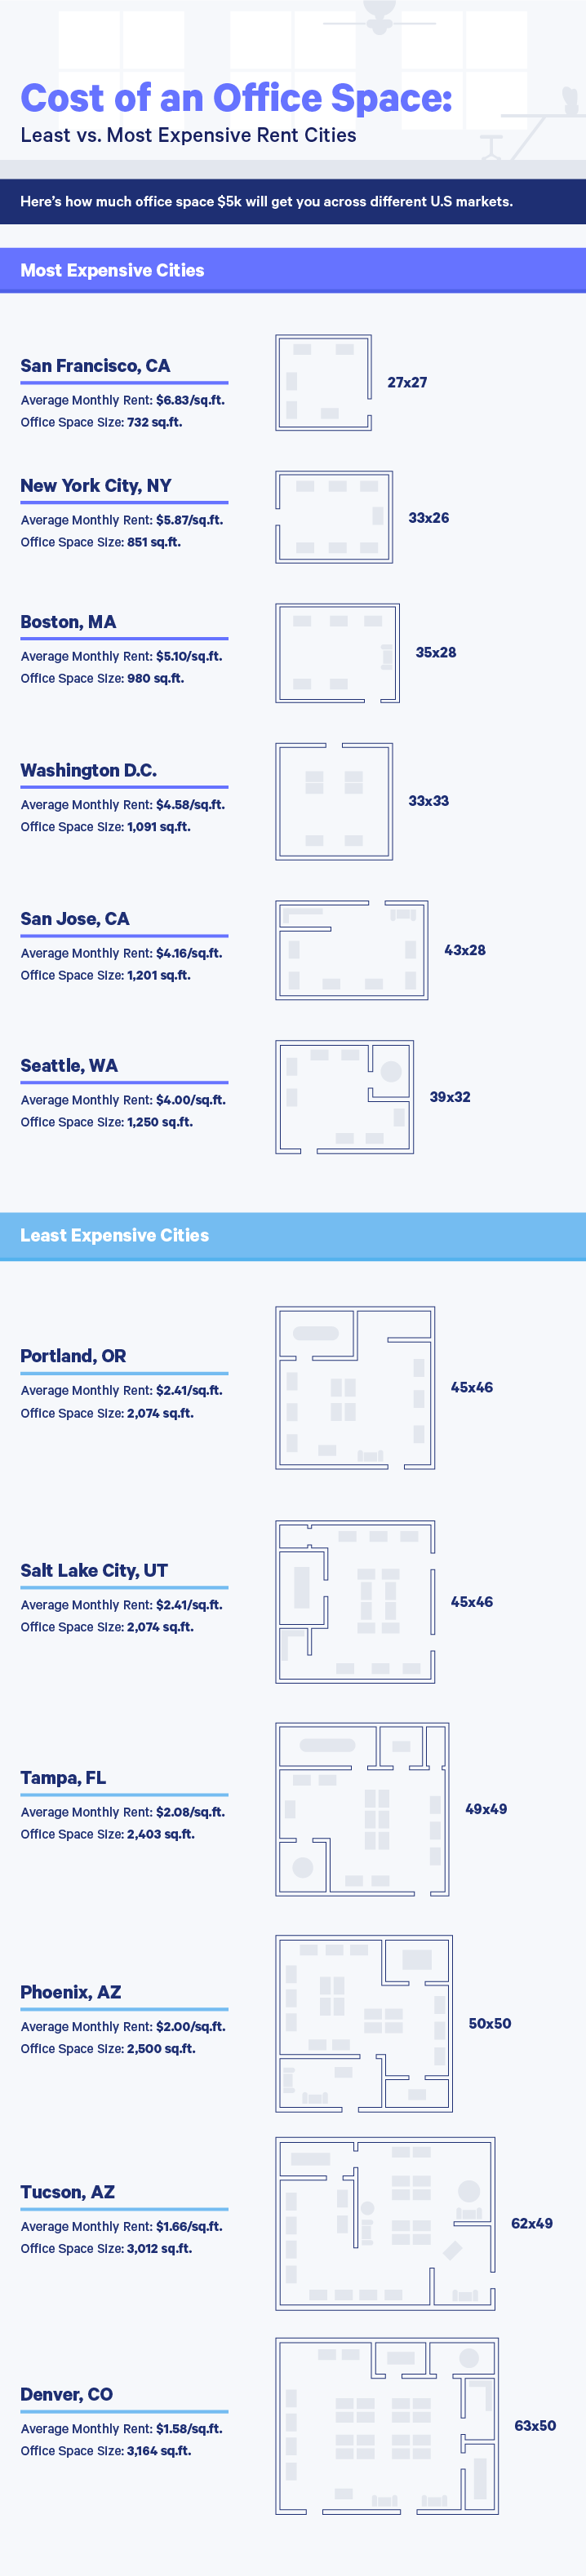 Cost of office rent in major cities